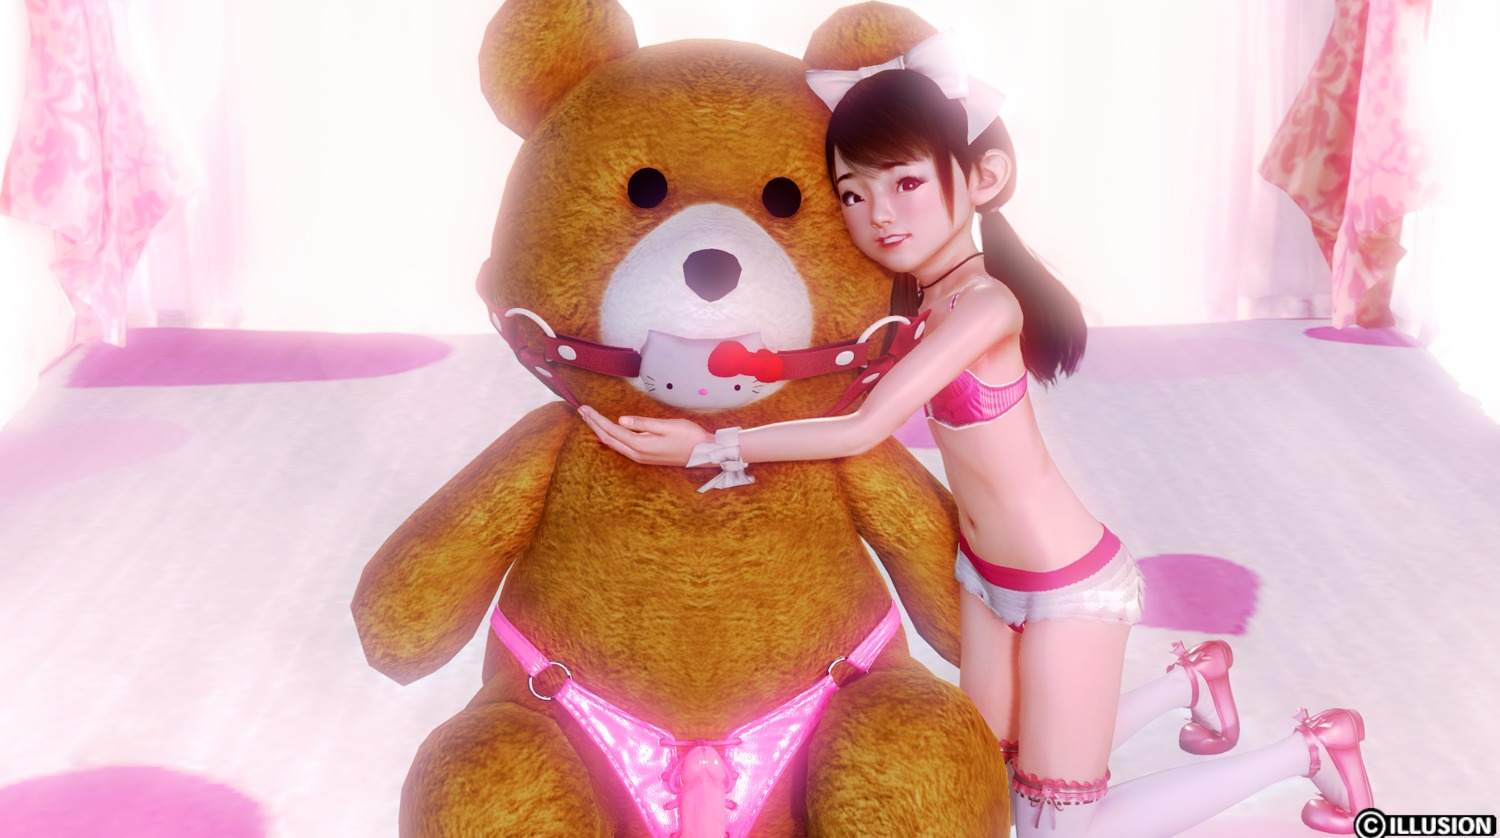 3dcg bare_arms bow brown_hair dildo hair_bow highres honey_select kneeling long_hair looking_at_viewer midriff navel photorealistic sex_toy stuffed_animal stuffed_toy tage-chan teddy_bear teeth twin_tails